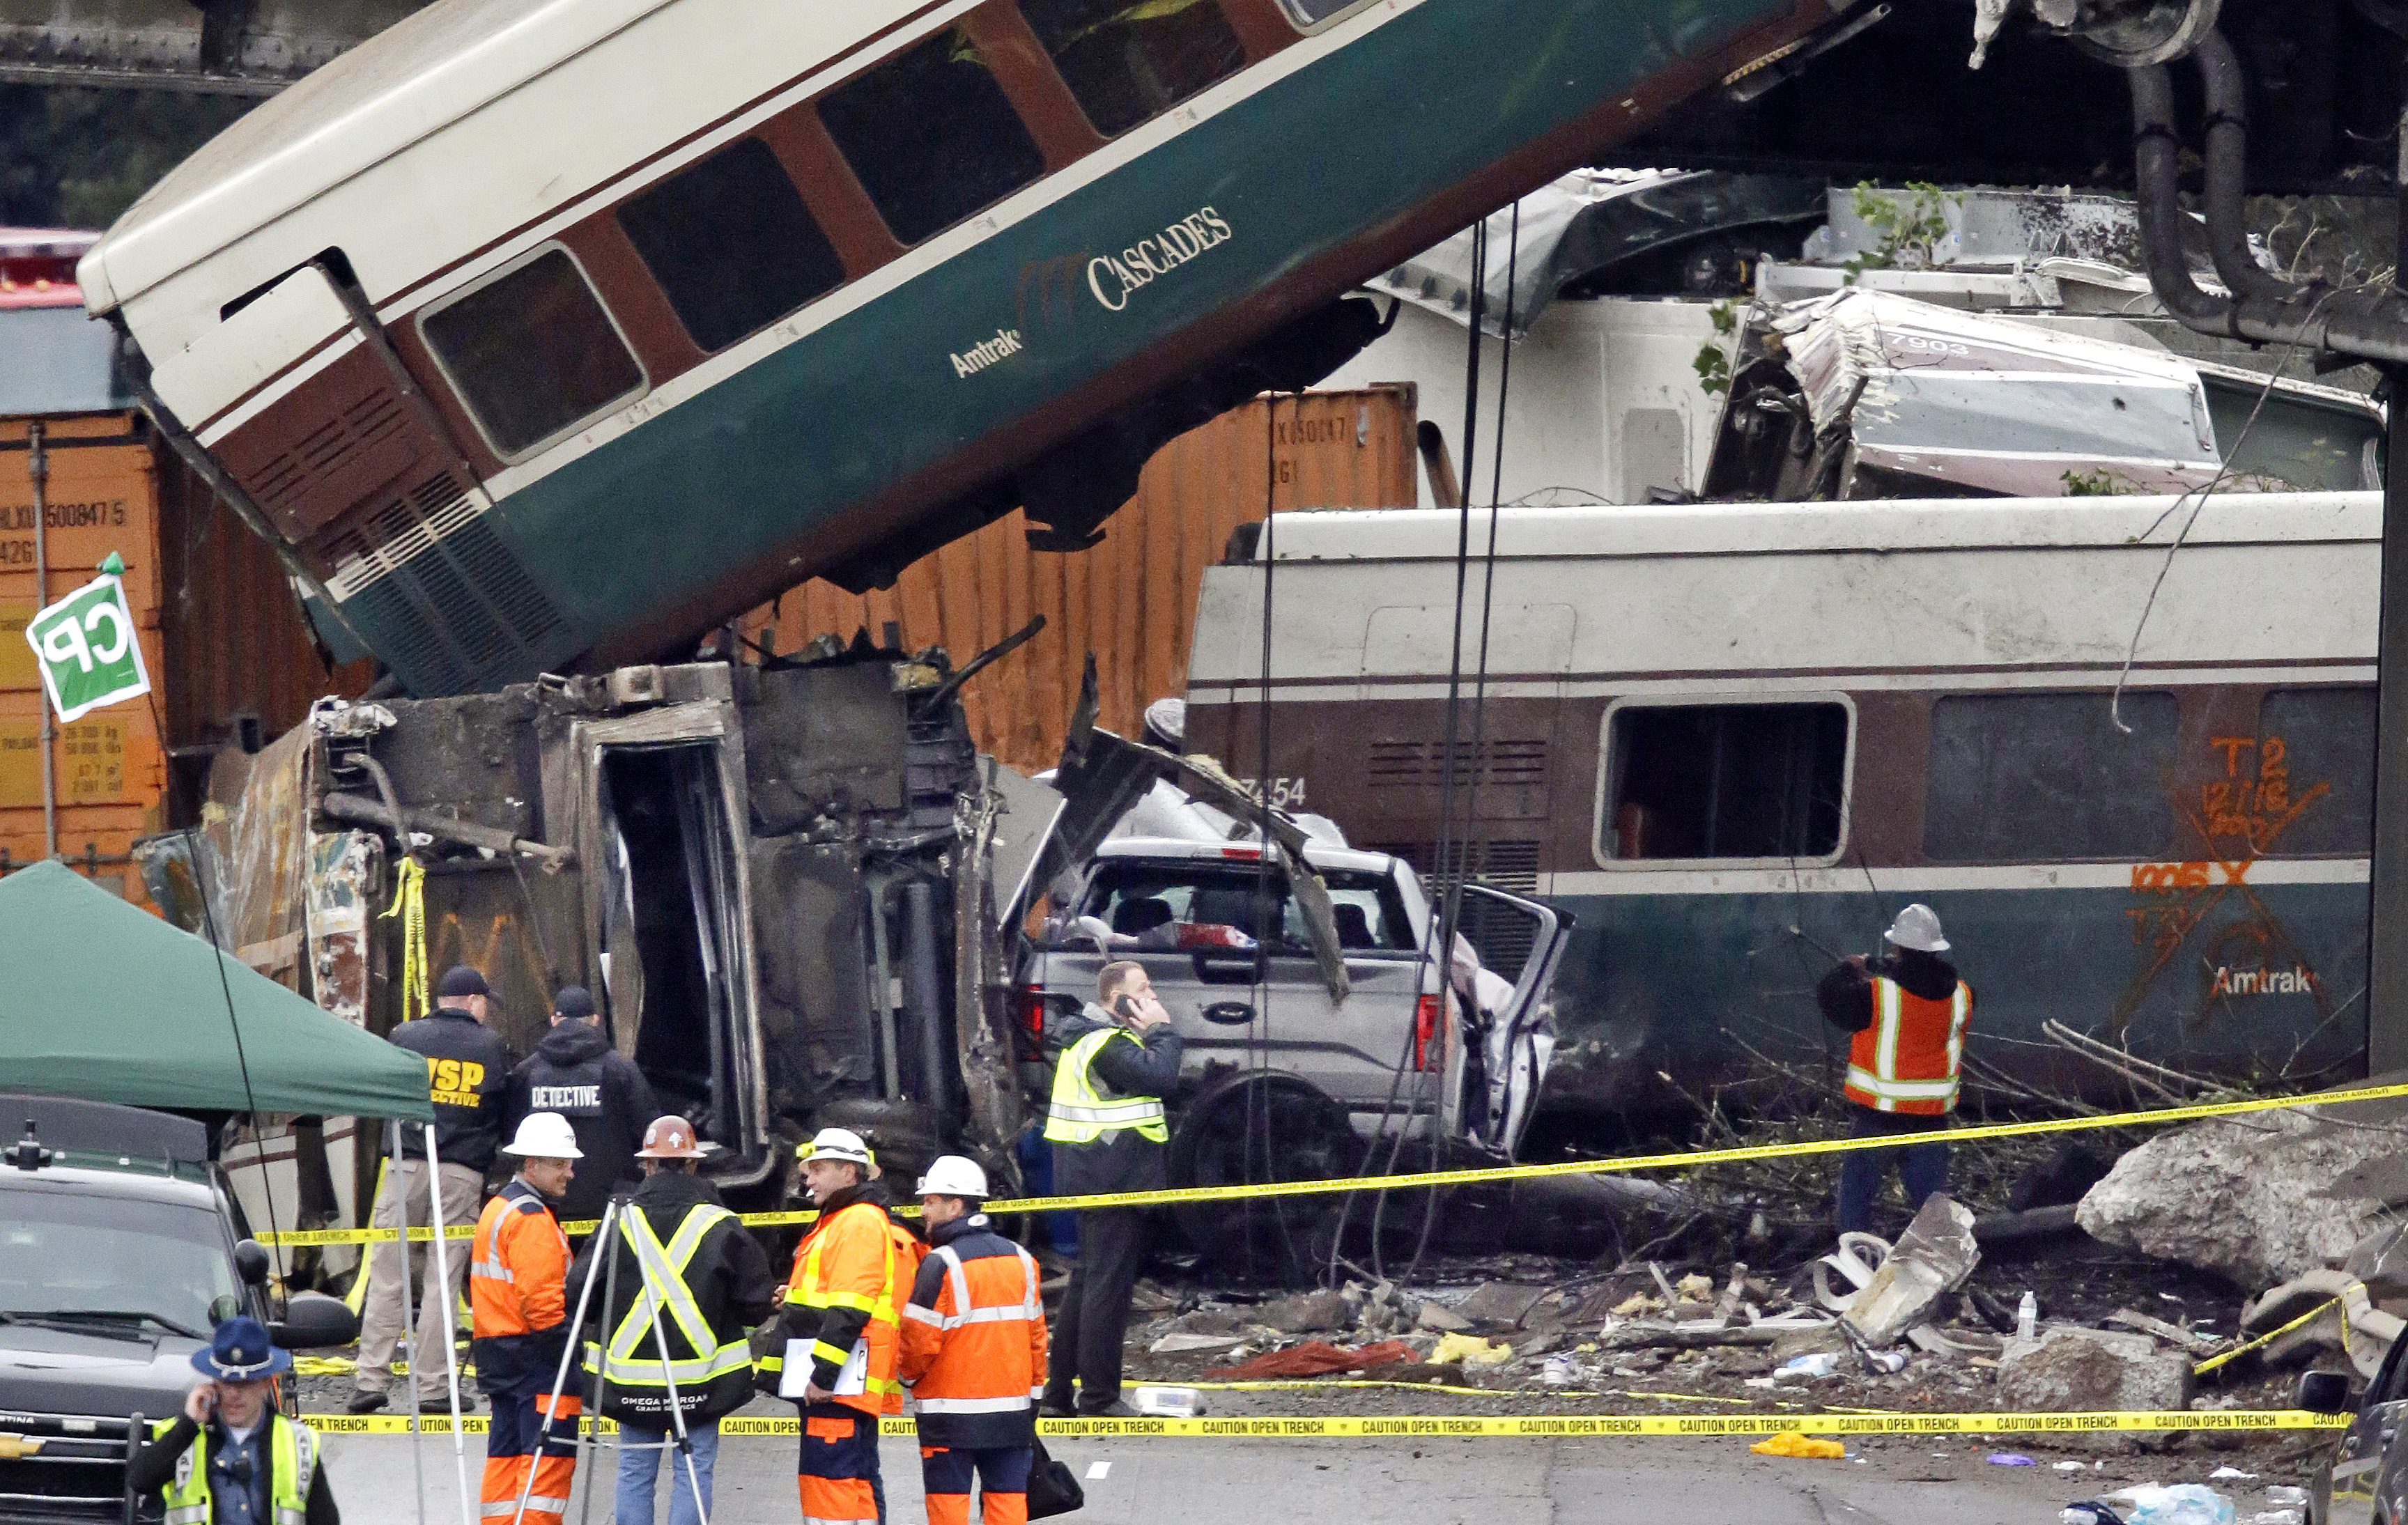 <div class='meta'><div class='origin-logo' data-origin='none'></div><span class='caption-text' data-credit='Elaine Thompson/AP Photo'>Cars from an Amtrak train that derailed above lay spilled onto Interstate 5 alongside smashed vehicles Monday, Dec. 18, 2017, in DuPont, Wash.</span></div>